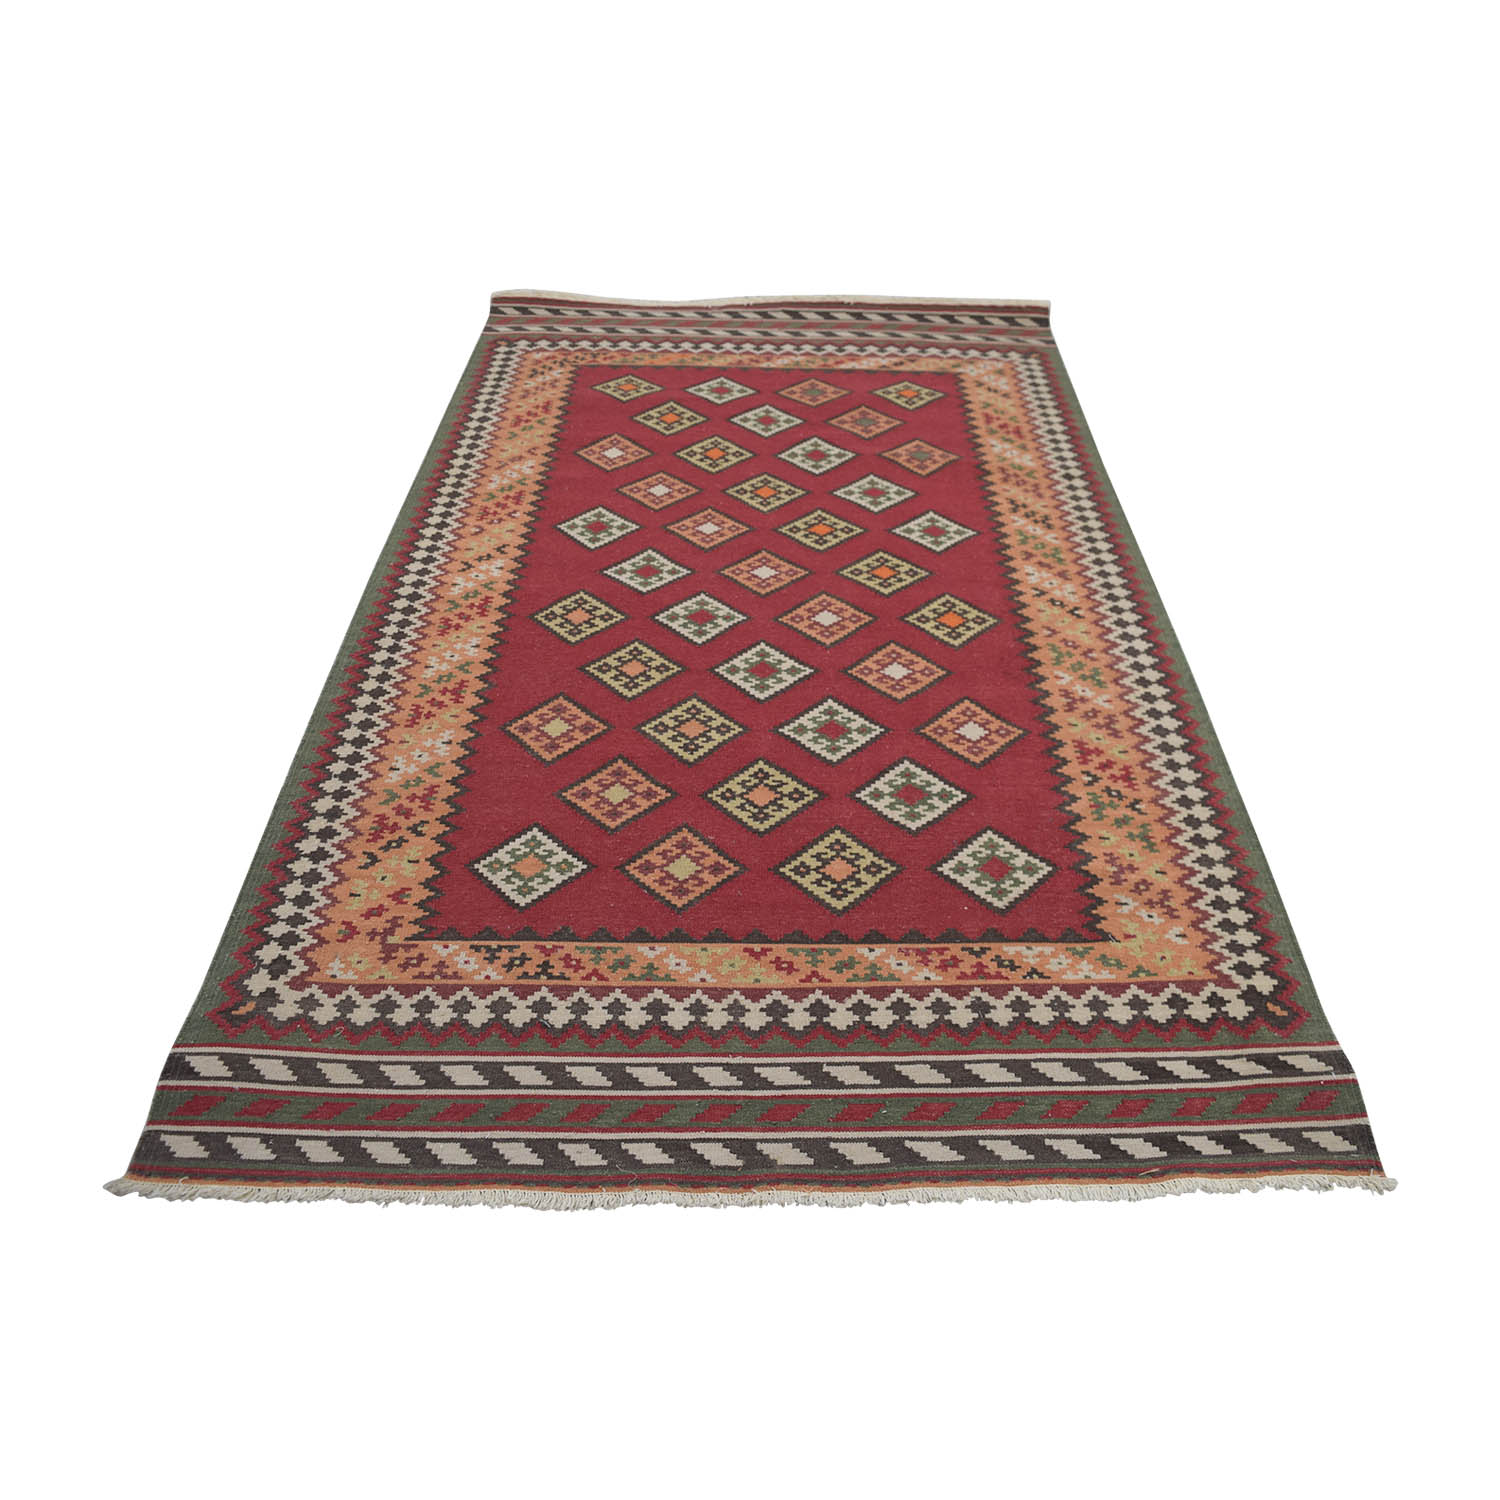 Obeetee Obeetee Red Dhurrie Polyester Rug